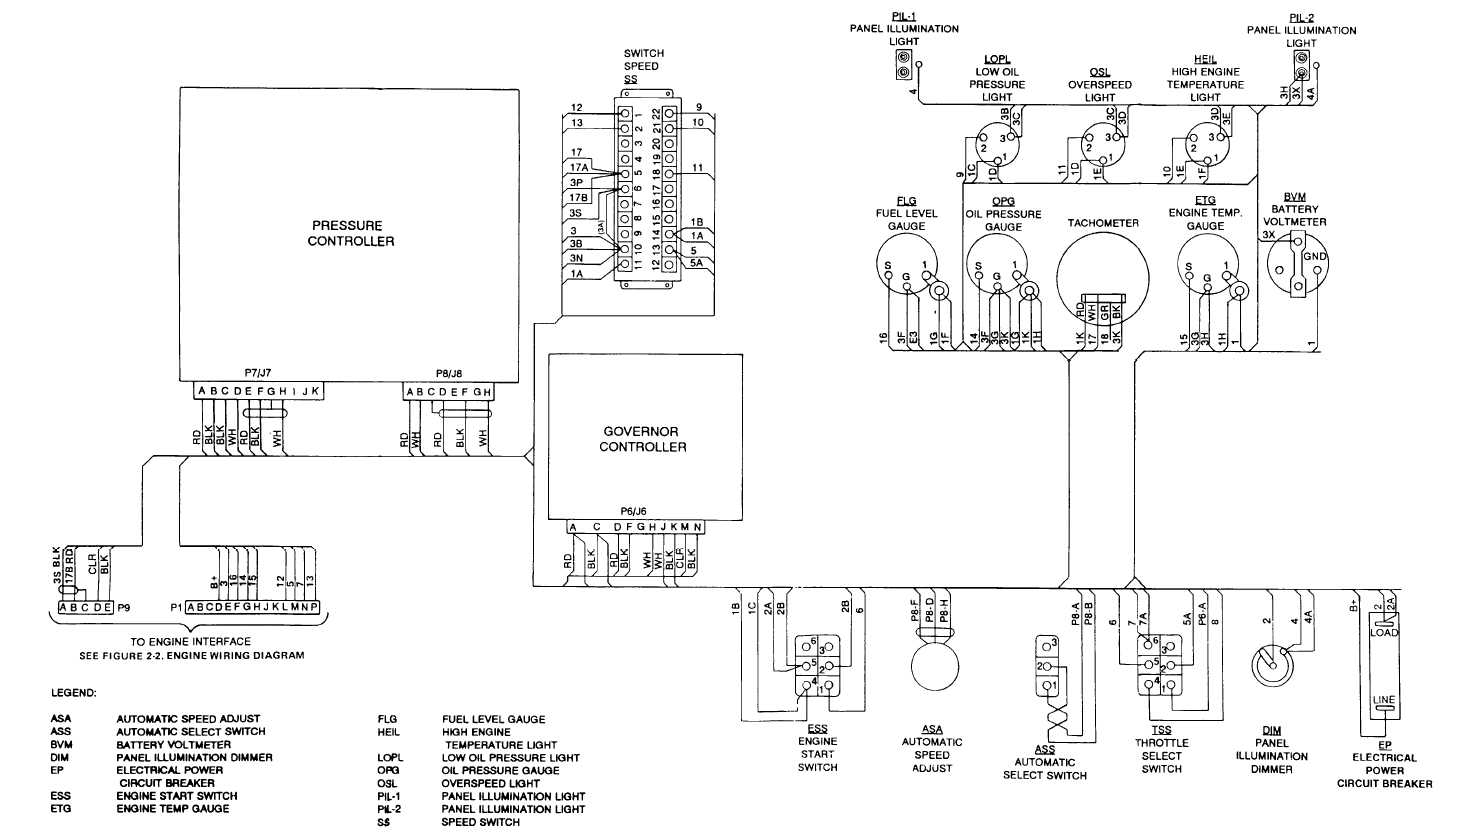 TM 10 4320 315 24_18_1 figure 2 1 control panel wiring diagram (sheet 1 of 4) vcb panel wiring diagram at pacquiaovsvargaslive.co